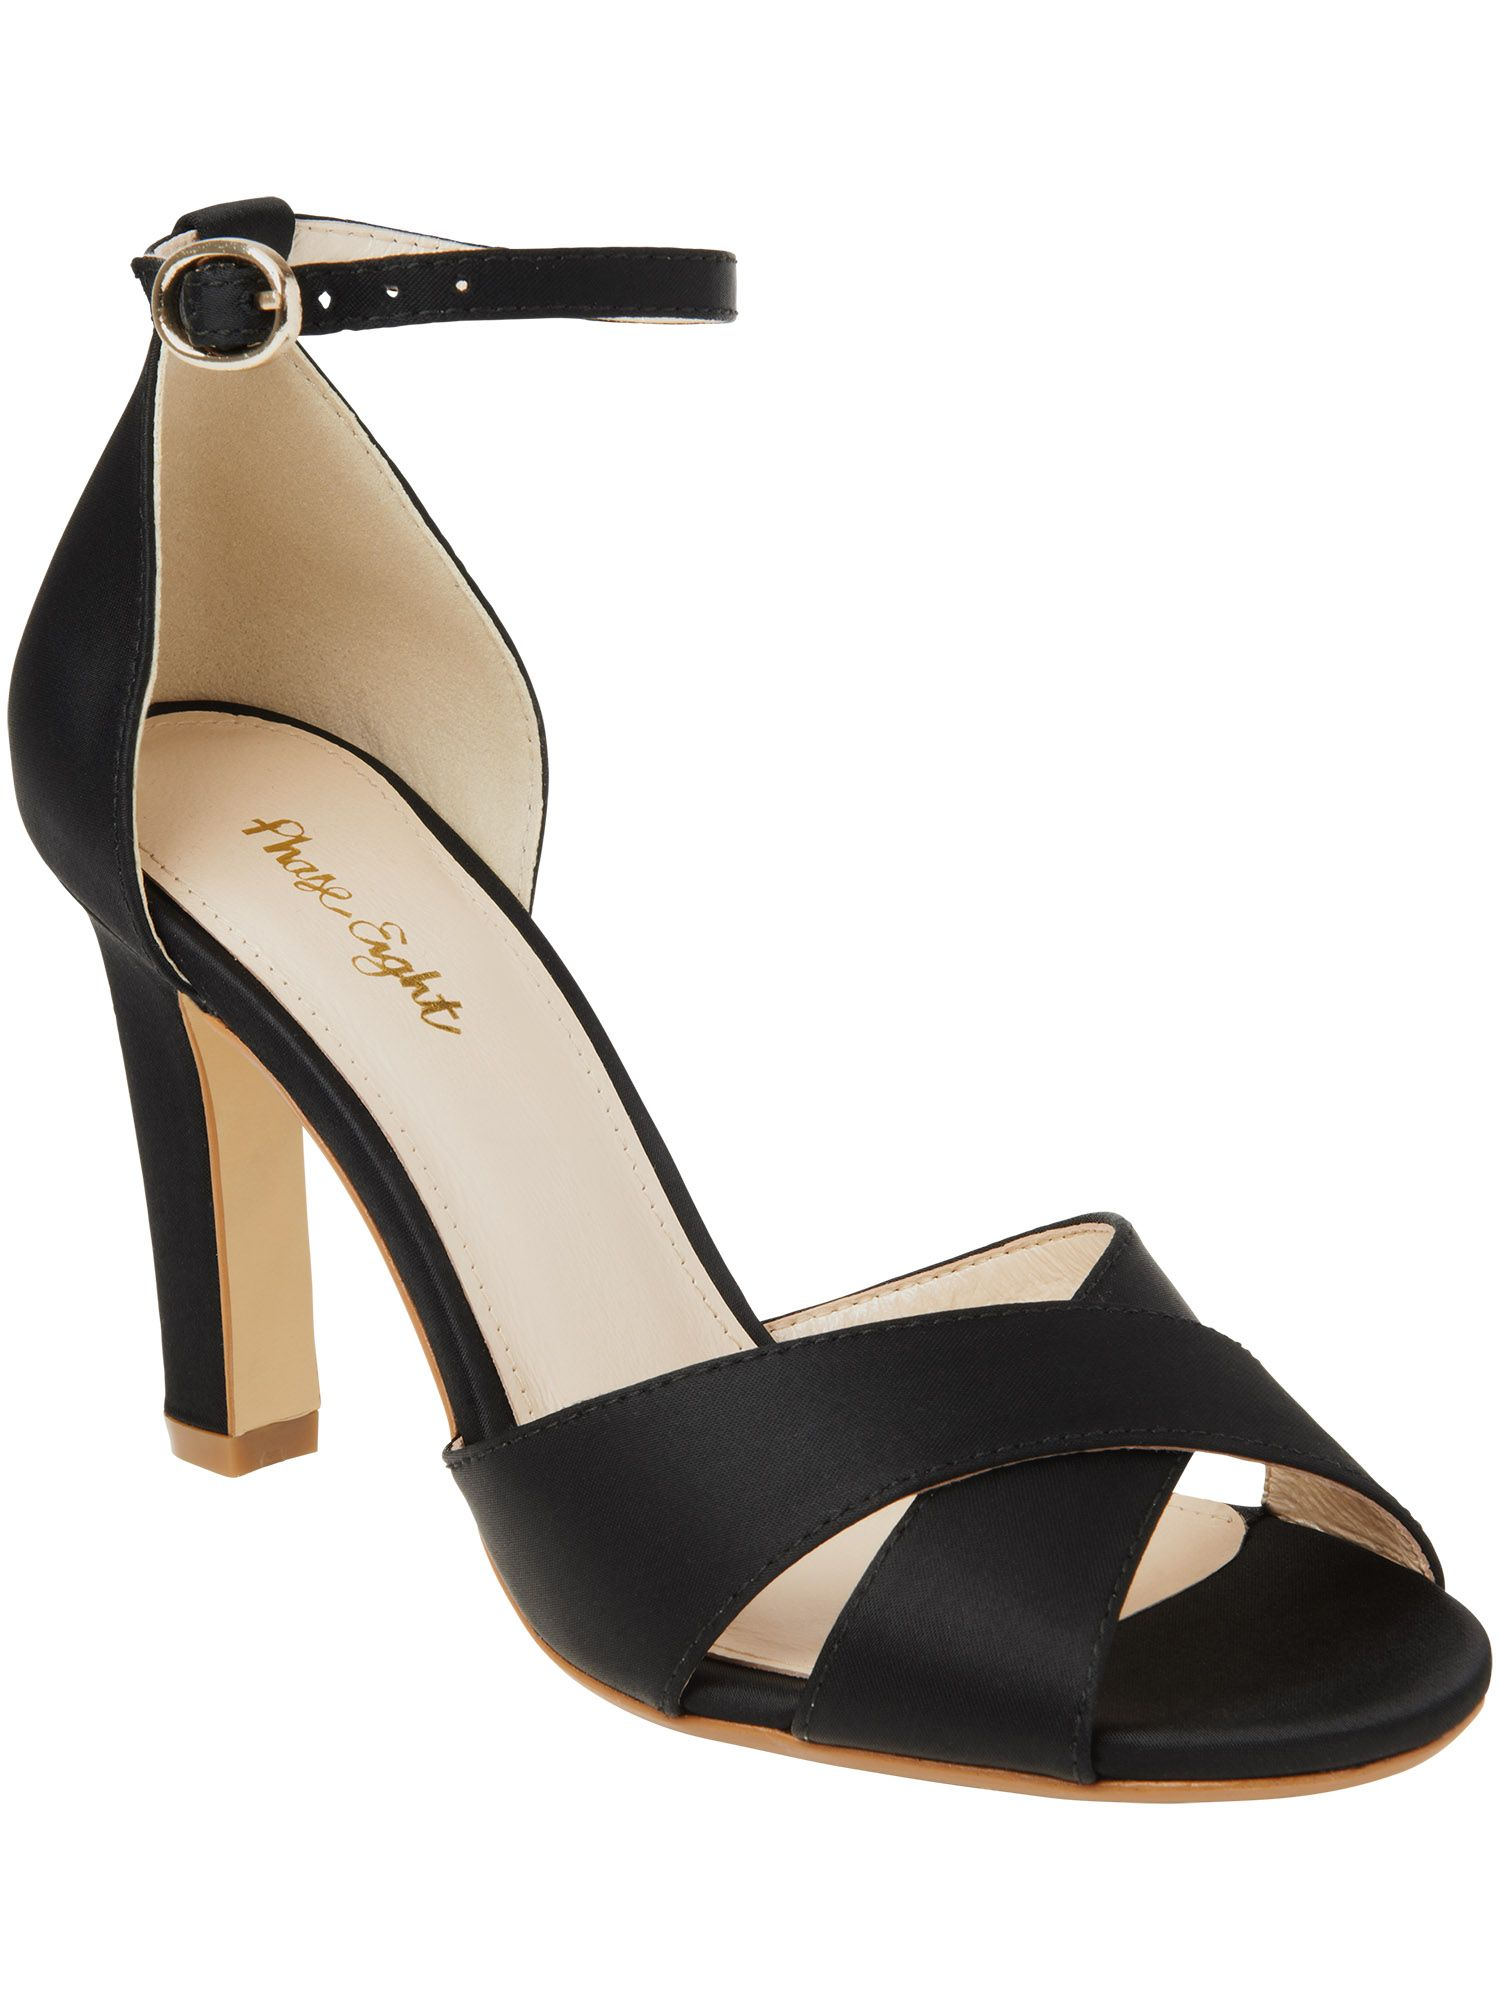 Ally satin block heel shoes